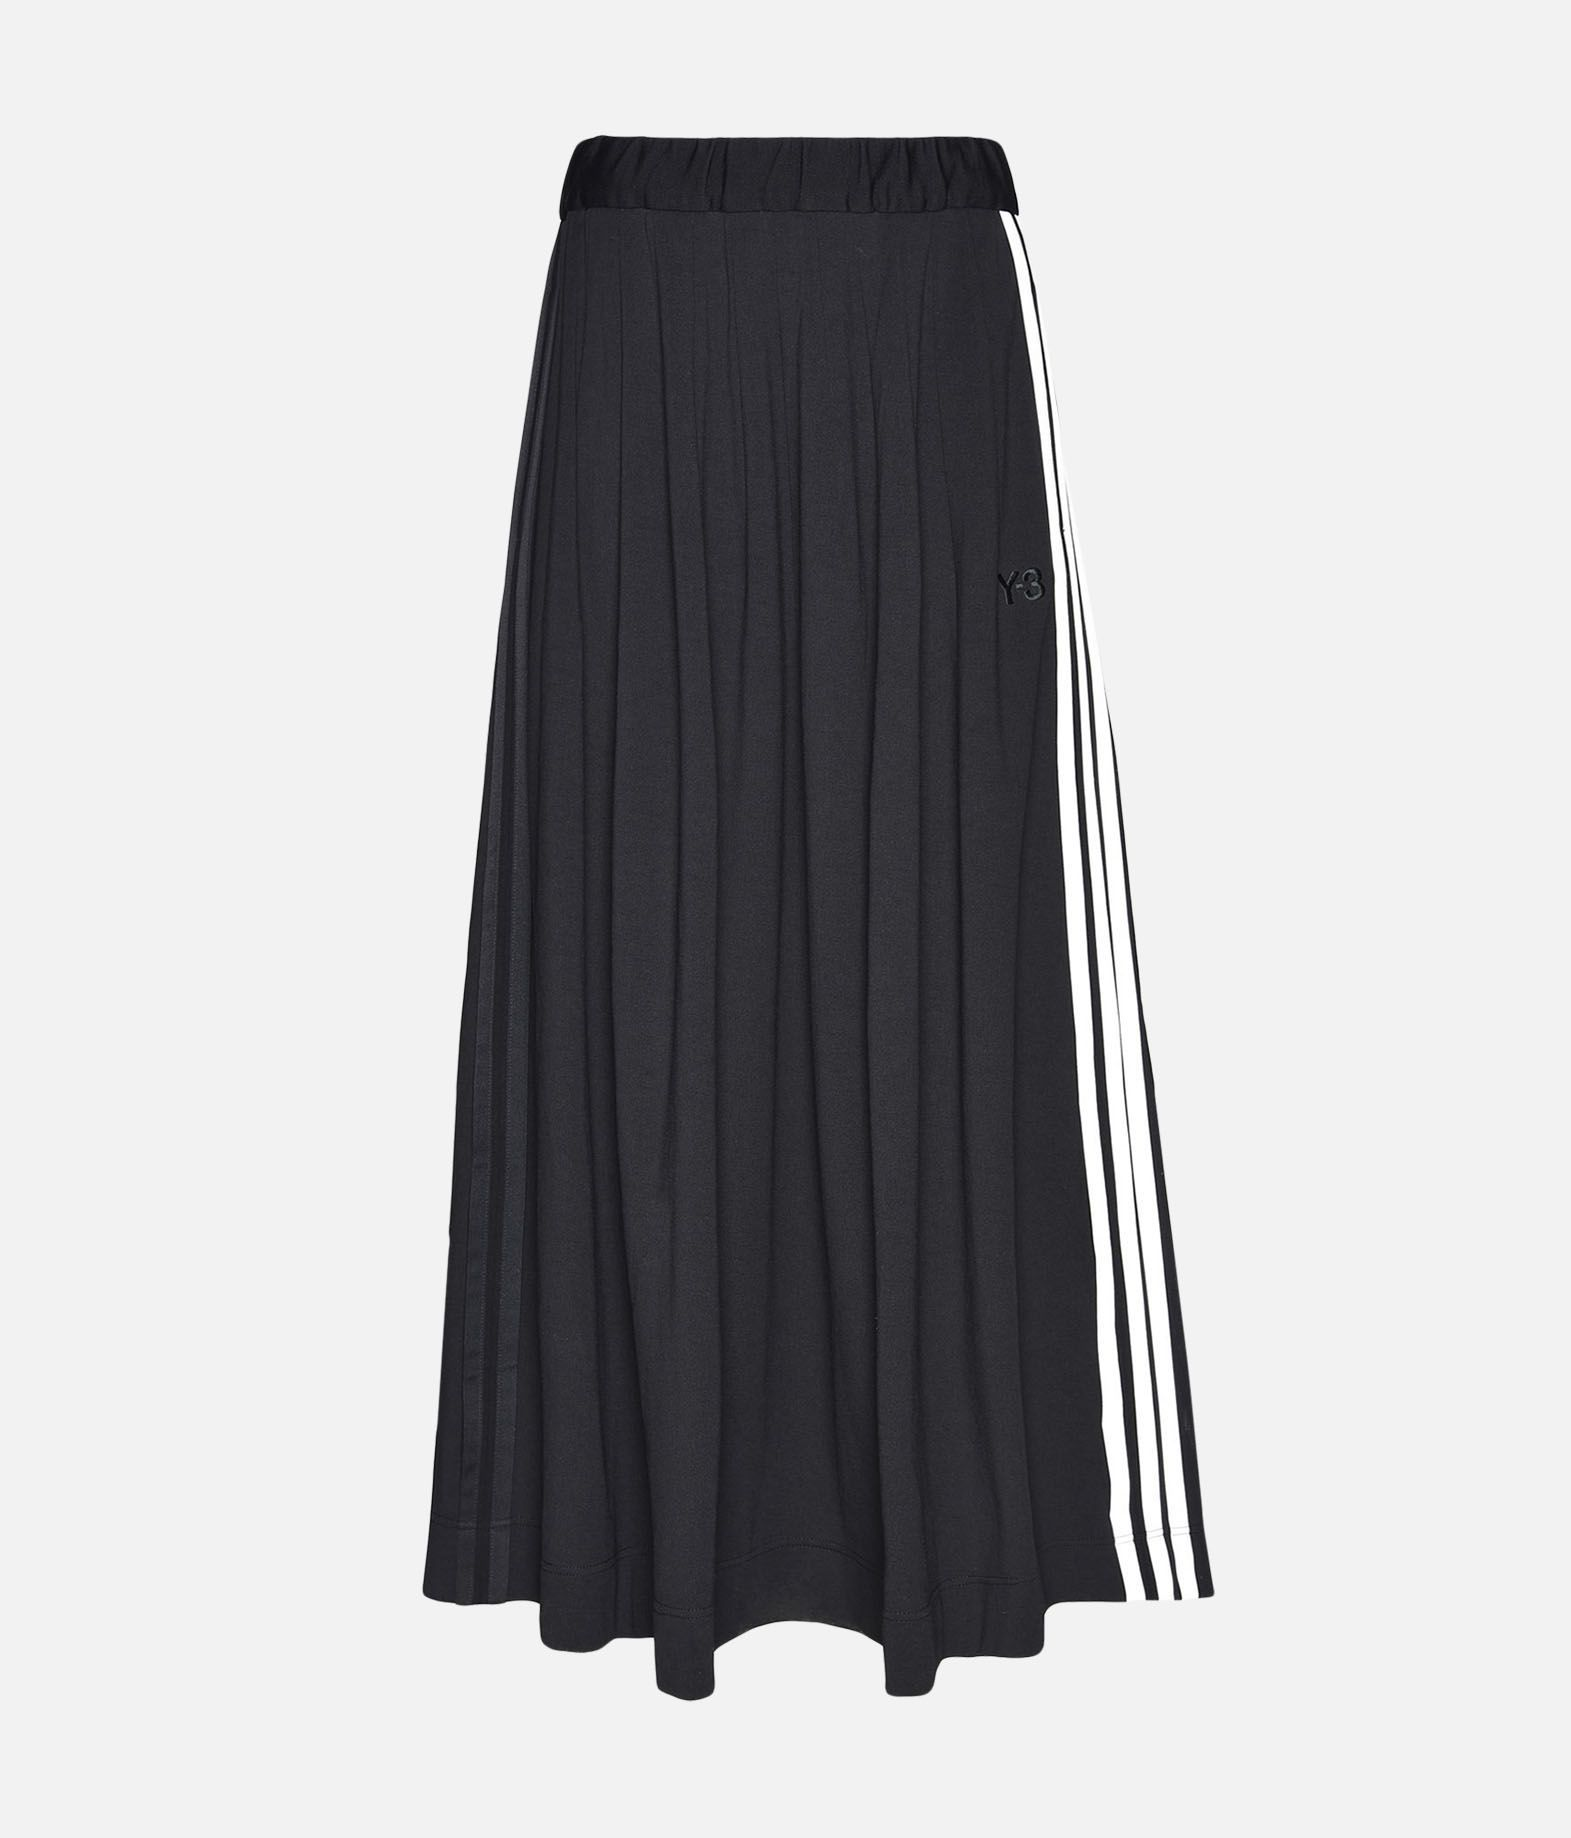 Y-3 Y-3 3-Stripes Selvedge Matte Track Skirt Knee length skirt Woman f